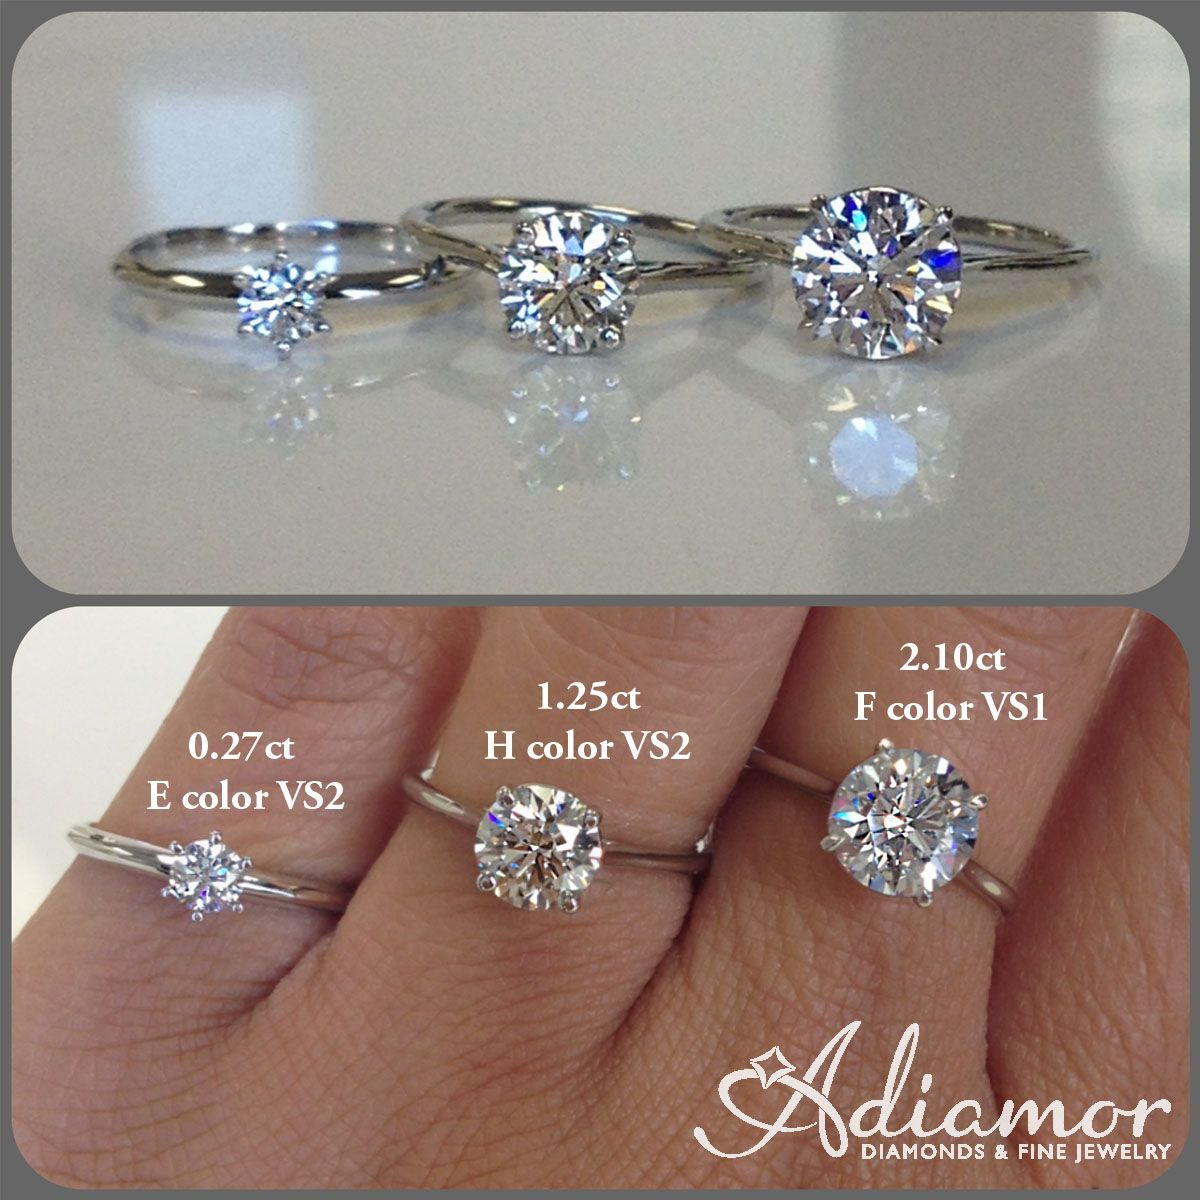 Solitaires Are Always A Favorite Here You Can See Different Sizes And Colors In Comp Engagement Rings On Finger Future Engagement Rings Cute Engagement Rings